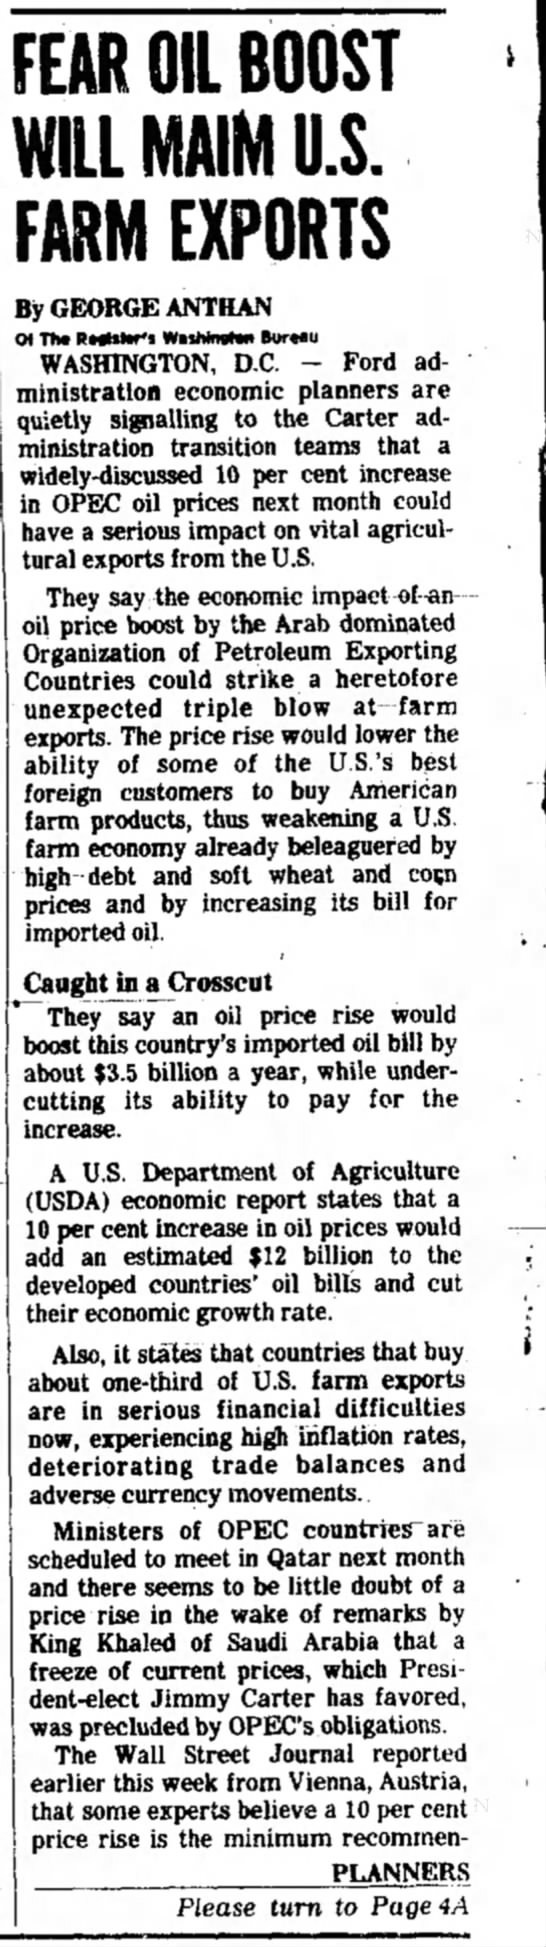 Fear Oil Boost Will Maim US Farm Exports #1 11/20/76